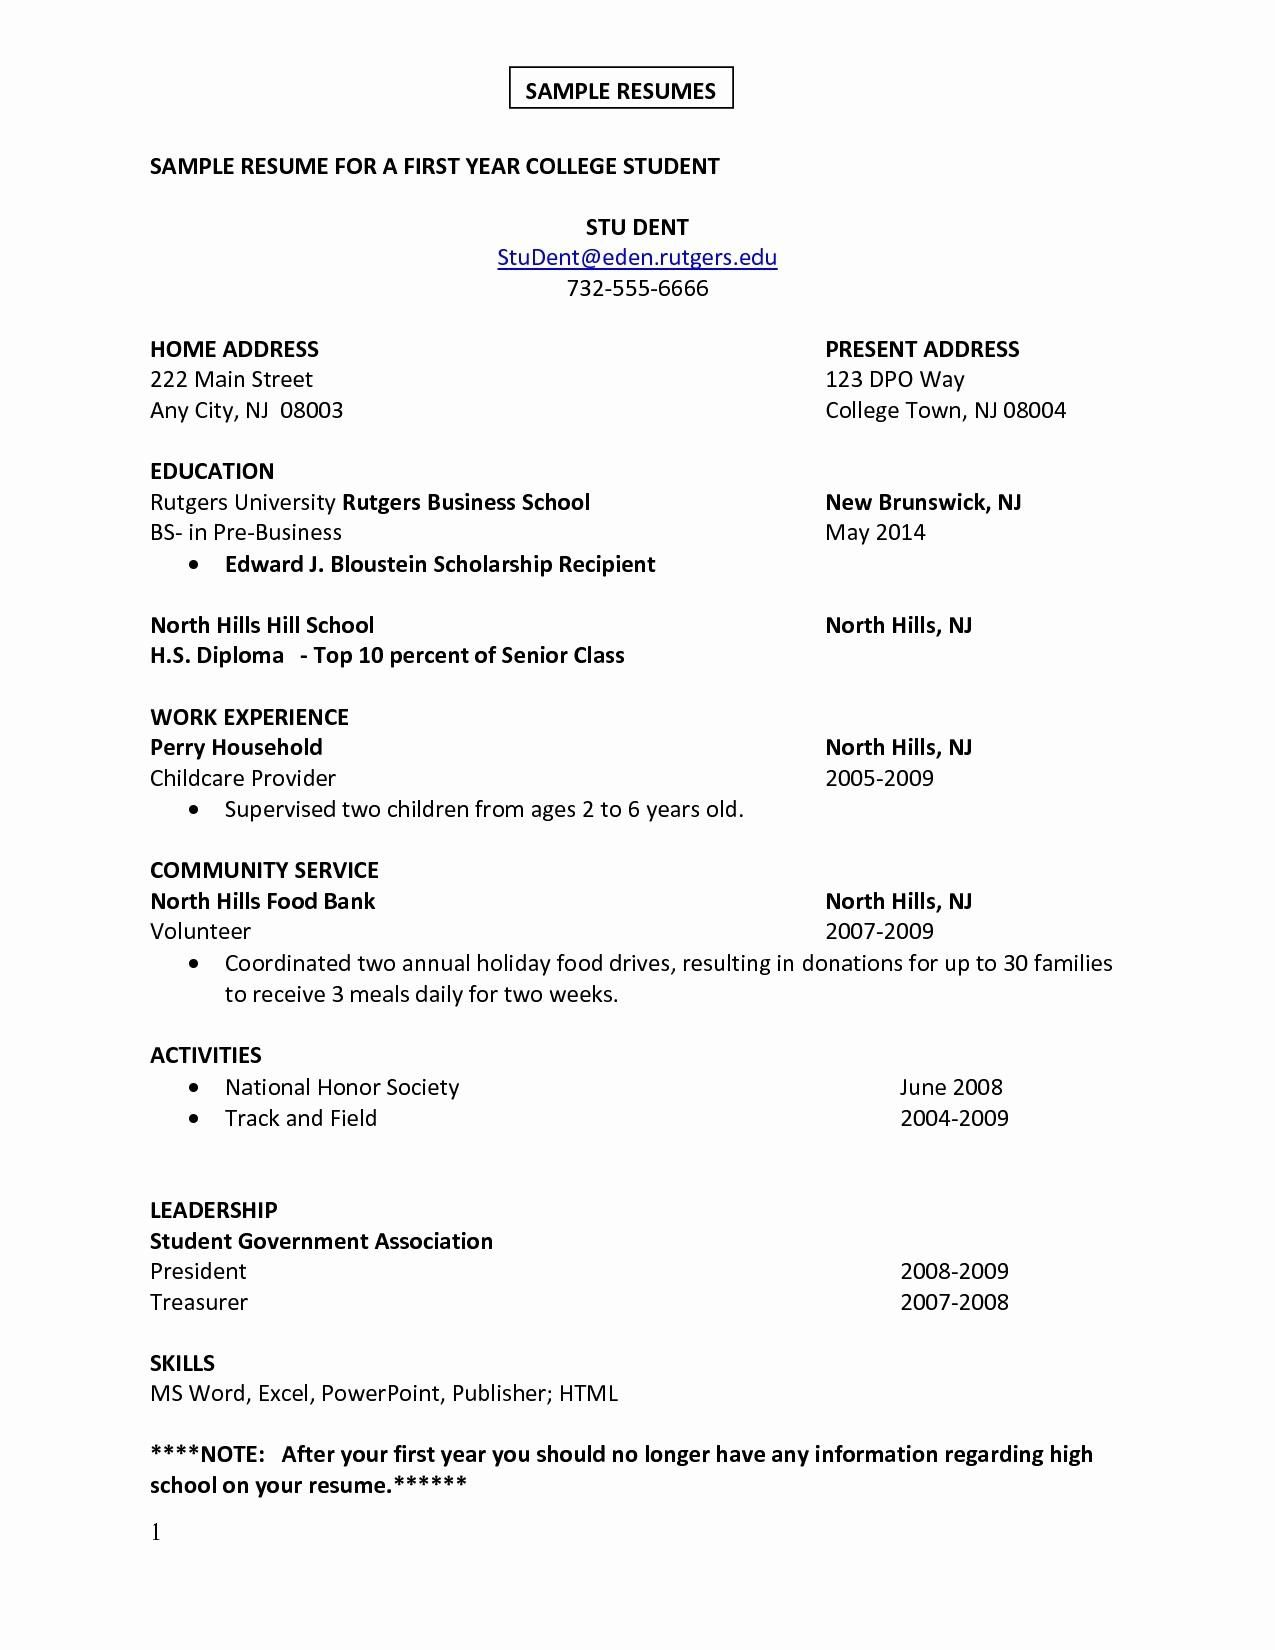 11 Rutgers Resume Template Ideas in 2020 (With images